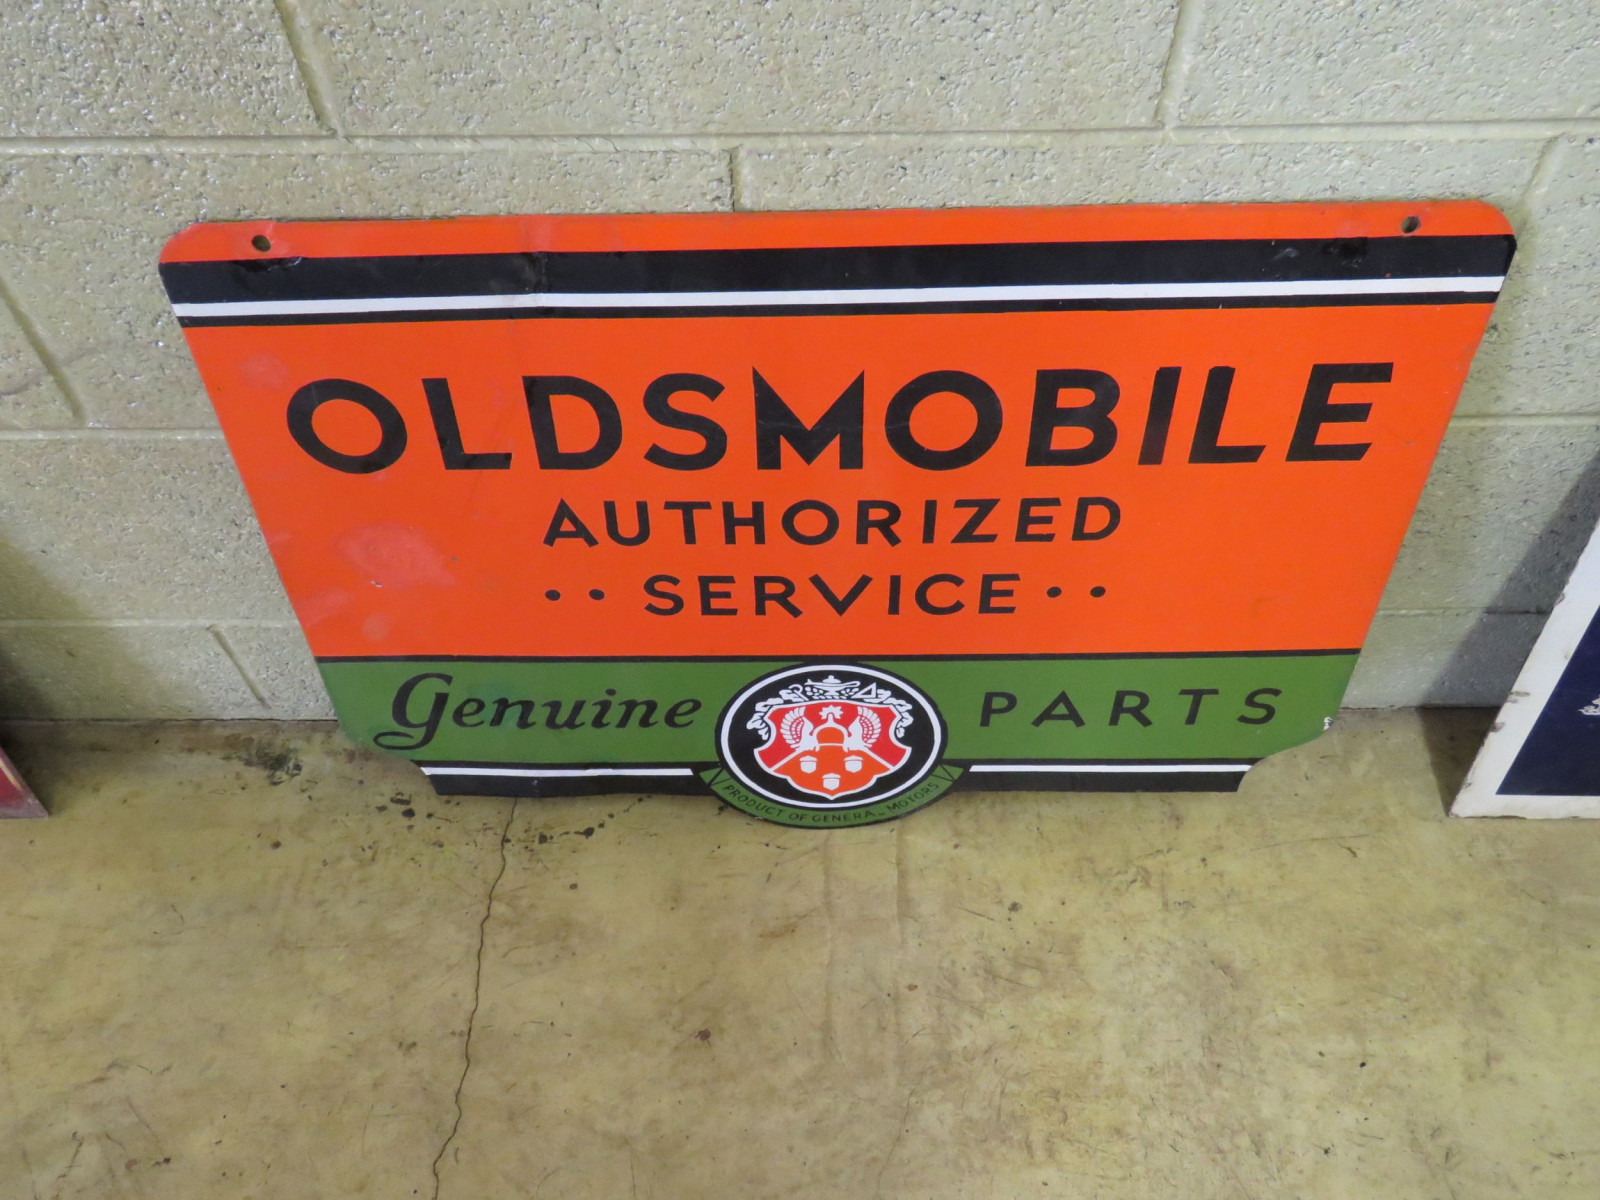 Oldsmobile Service Porcelain Sign - Image 1